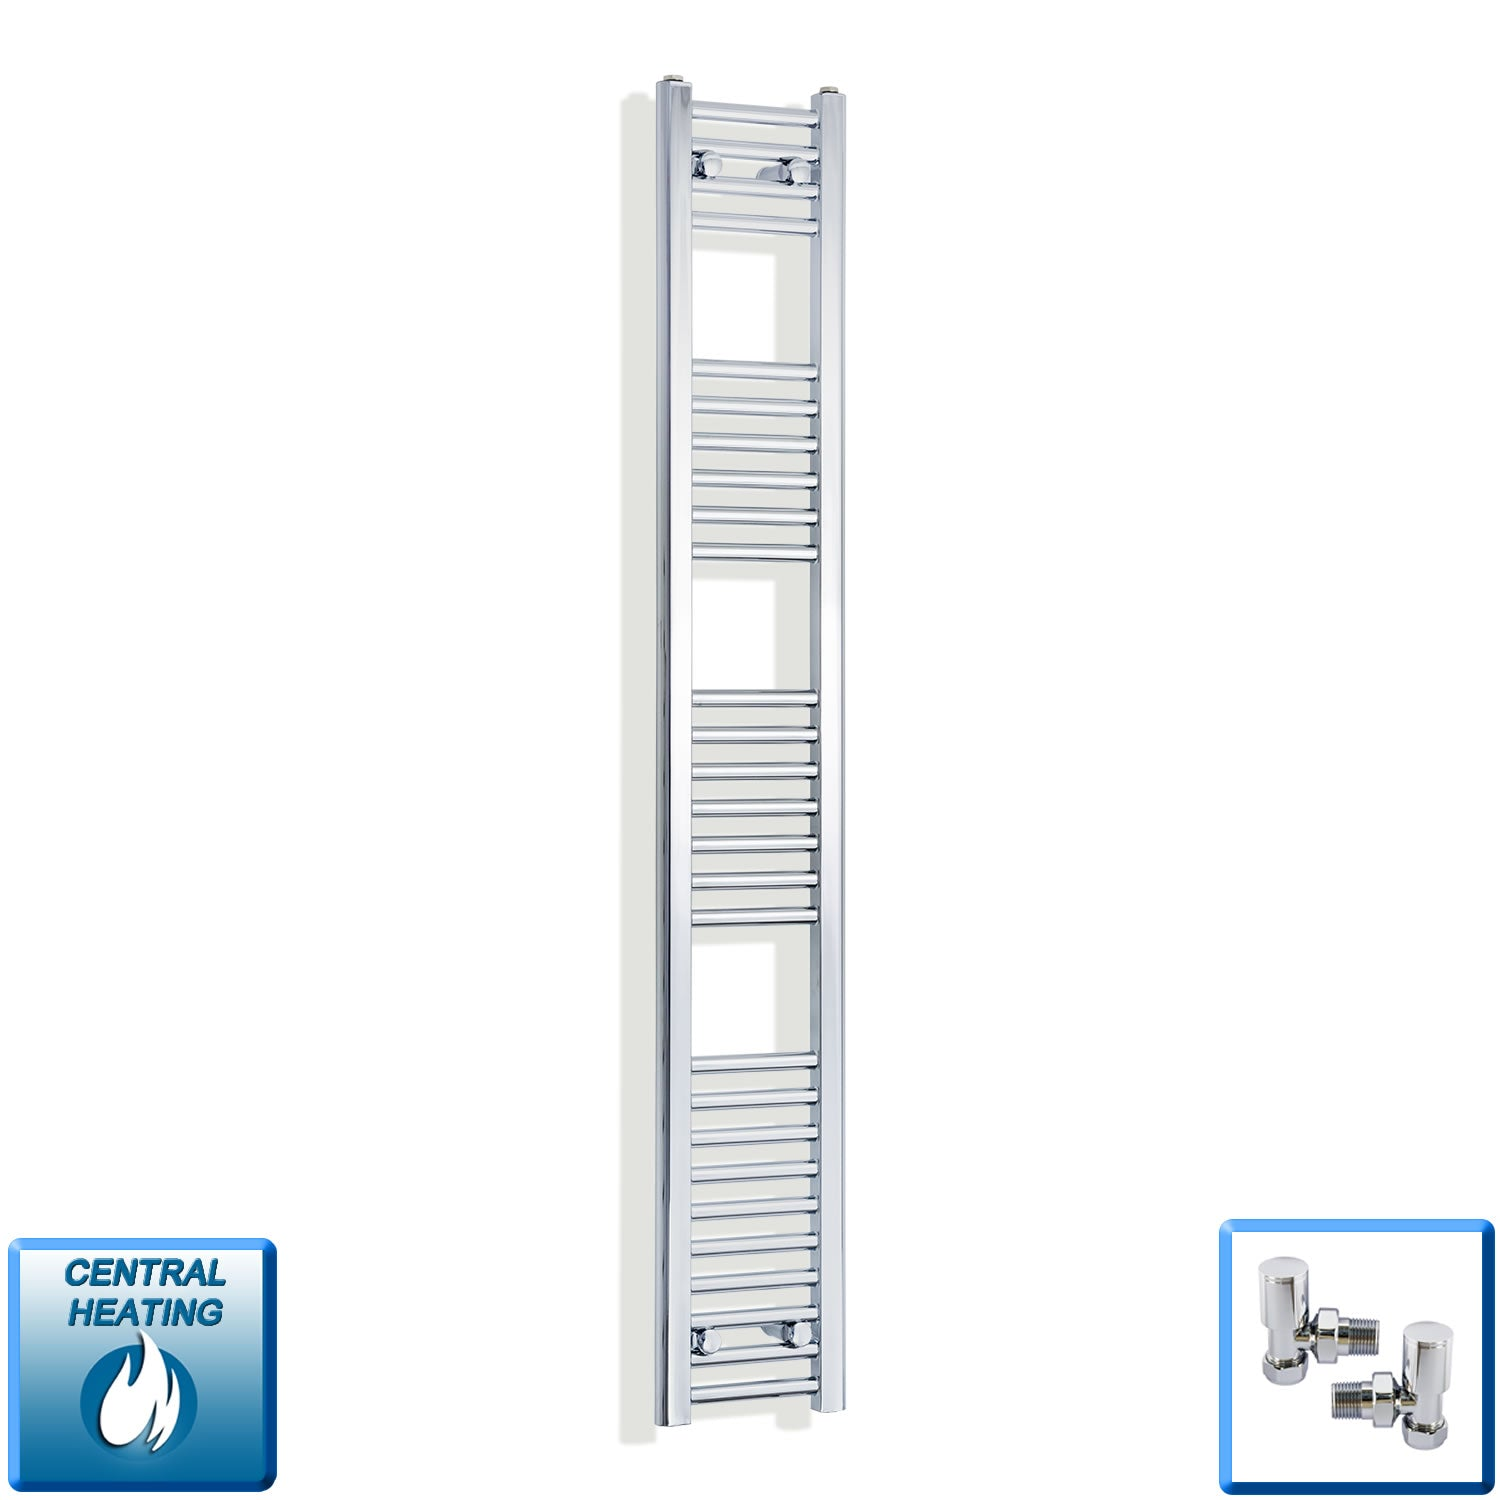 200mm Wide 1600mm High Chrome Towel Rail Radiator With Angled Valve